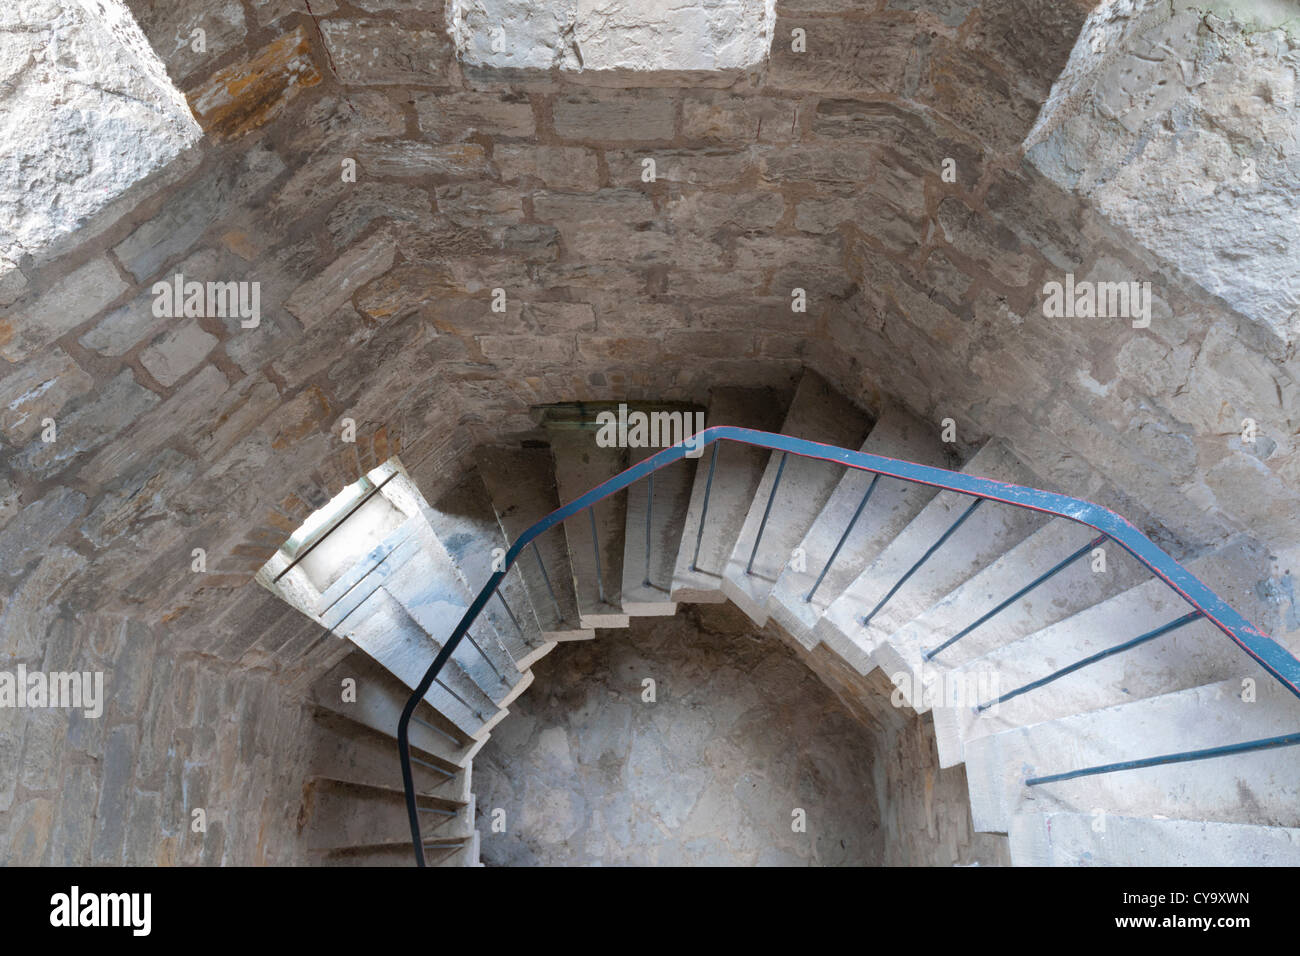 Concrete Spiral Stairs With Metallic Handrails Go Down   Stock Image